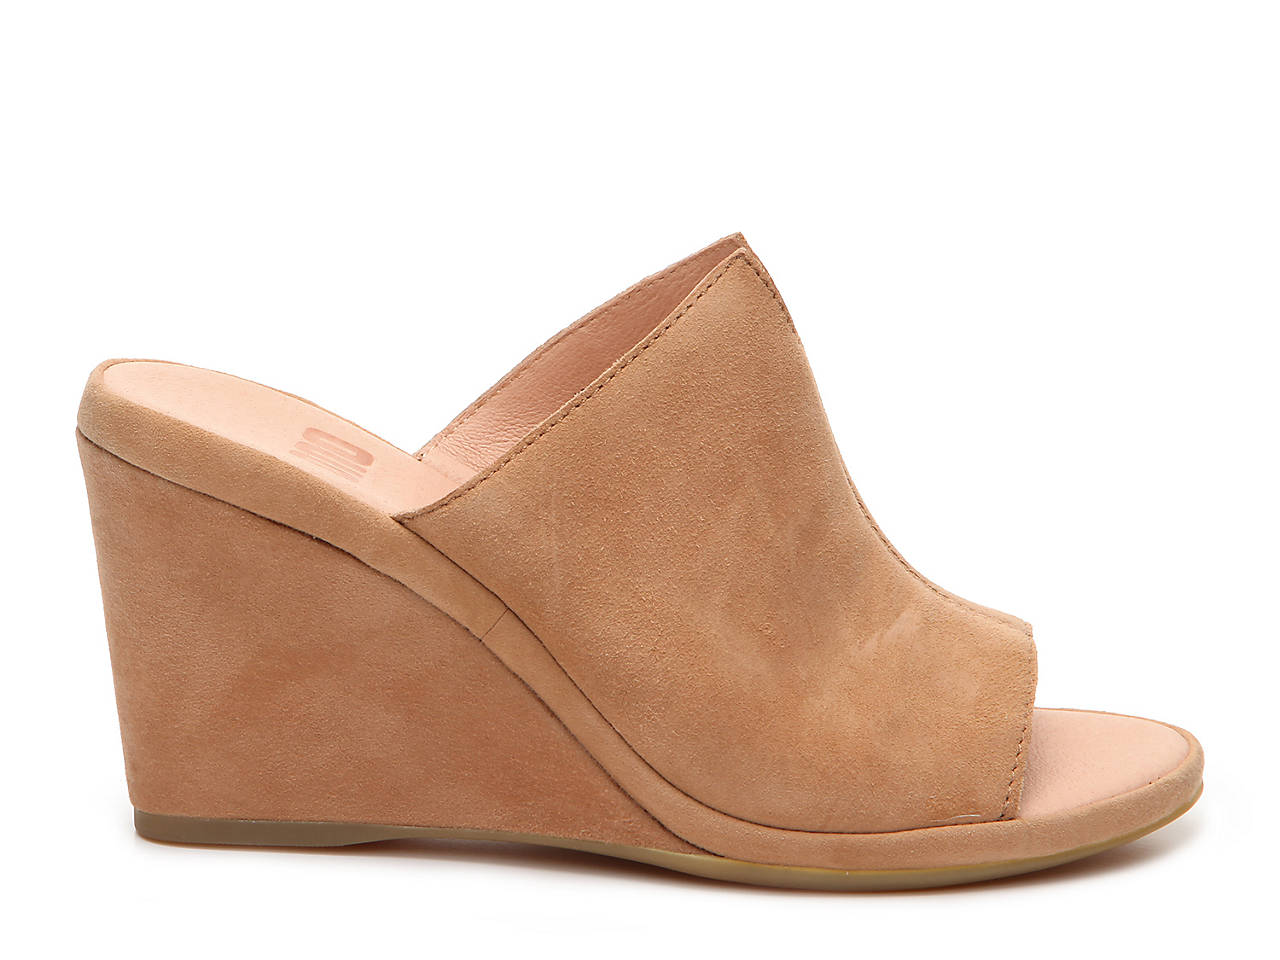 ONO Hannah Suede Slip-On Wedge Mules R38HW